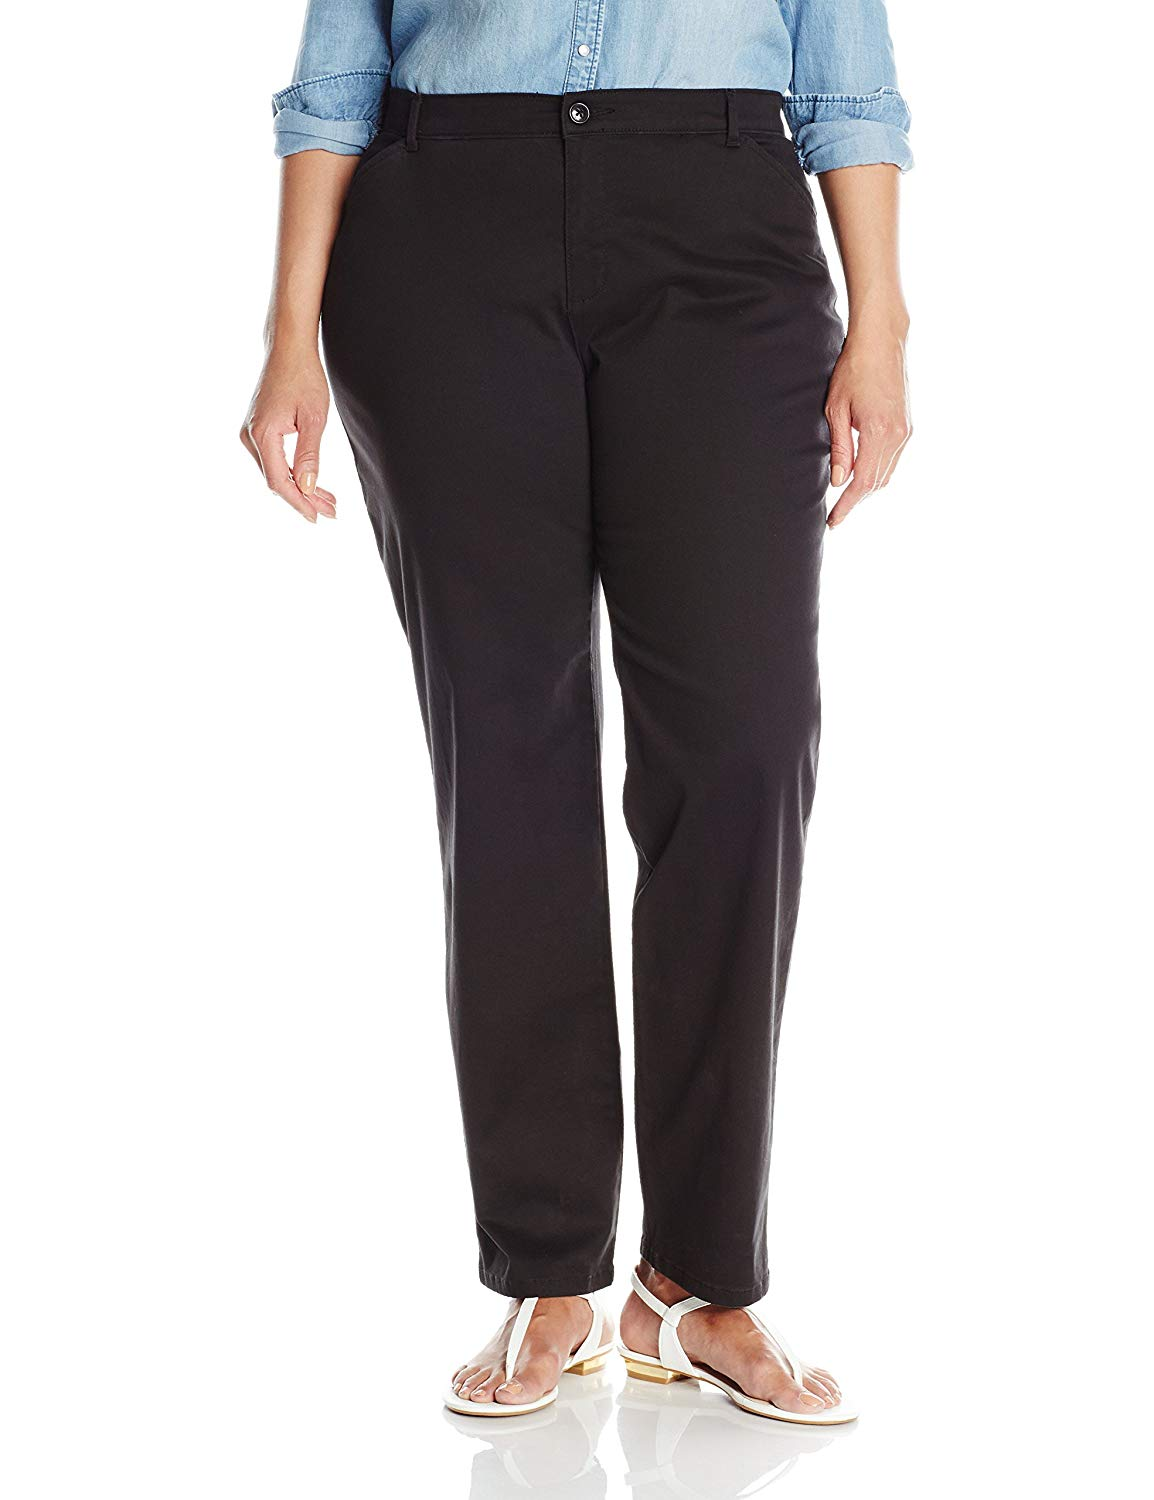 LEE Womens Plus Size Relaxed Fit All Day Straight Leg Pant